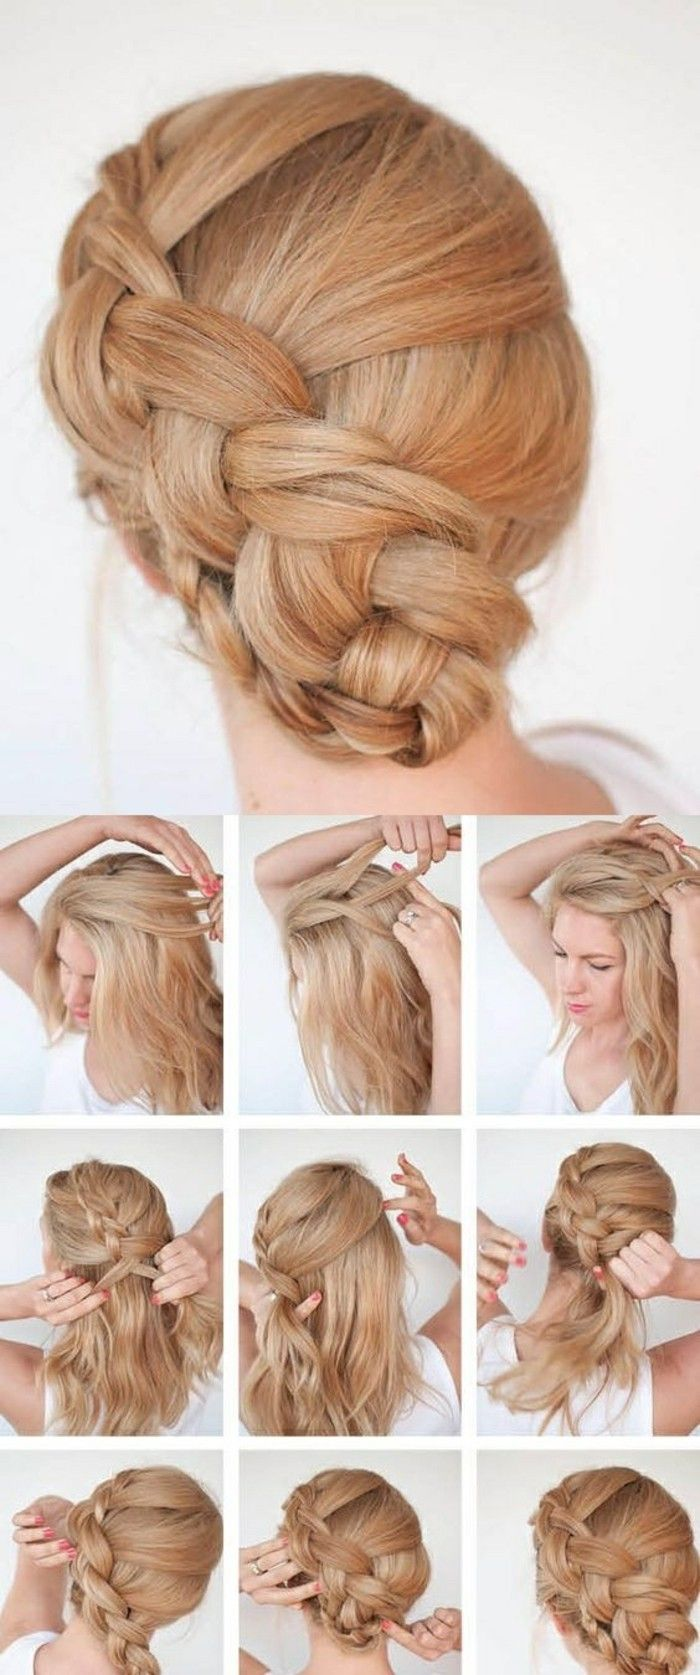 Dirndl Flechtfrisuren Pin By Ursula Leopold Fotografie On Haare ‍‍✂️ | Easy Hairstyles For Long Hair, Easy Hairstyles, Long Hair Styles